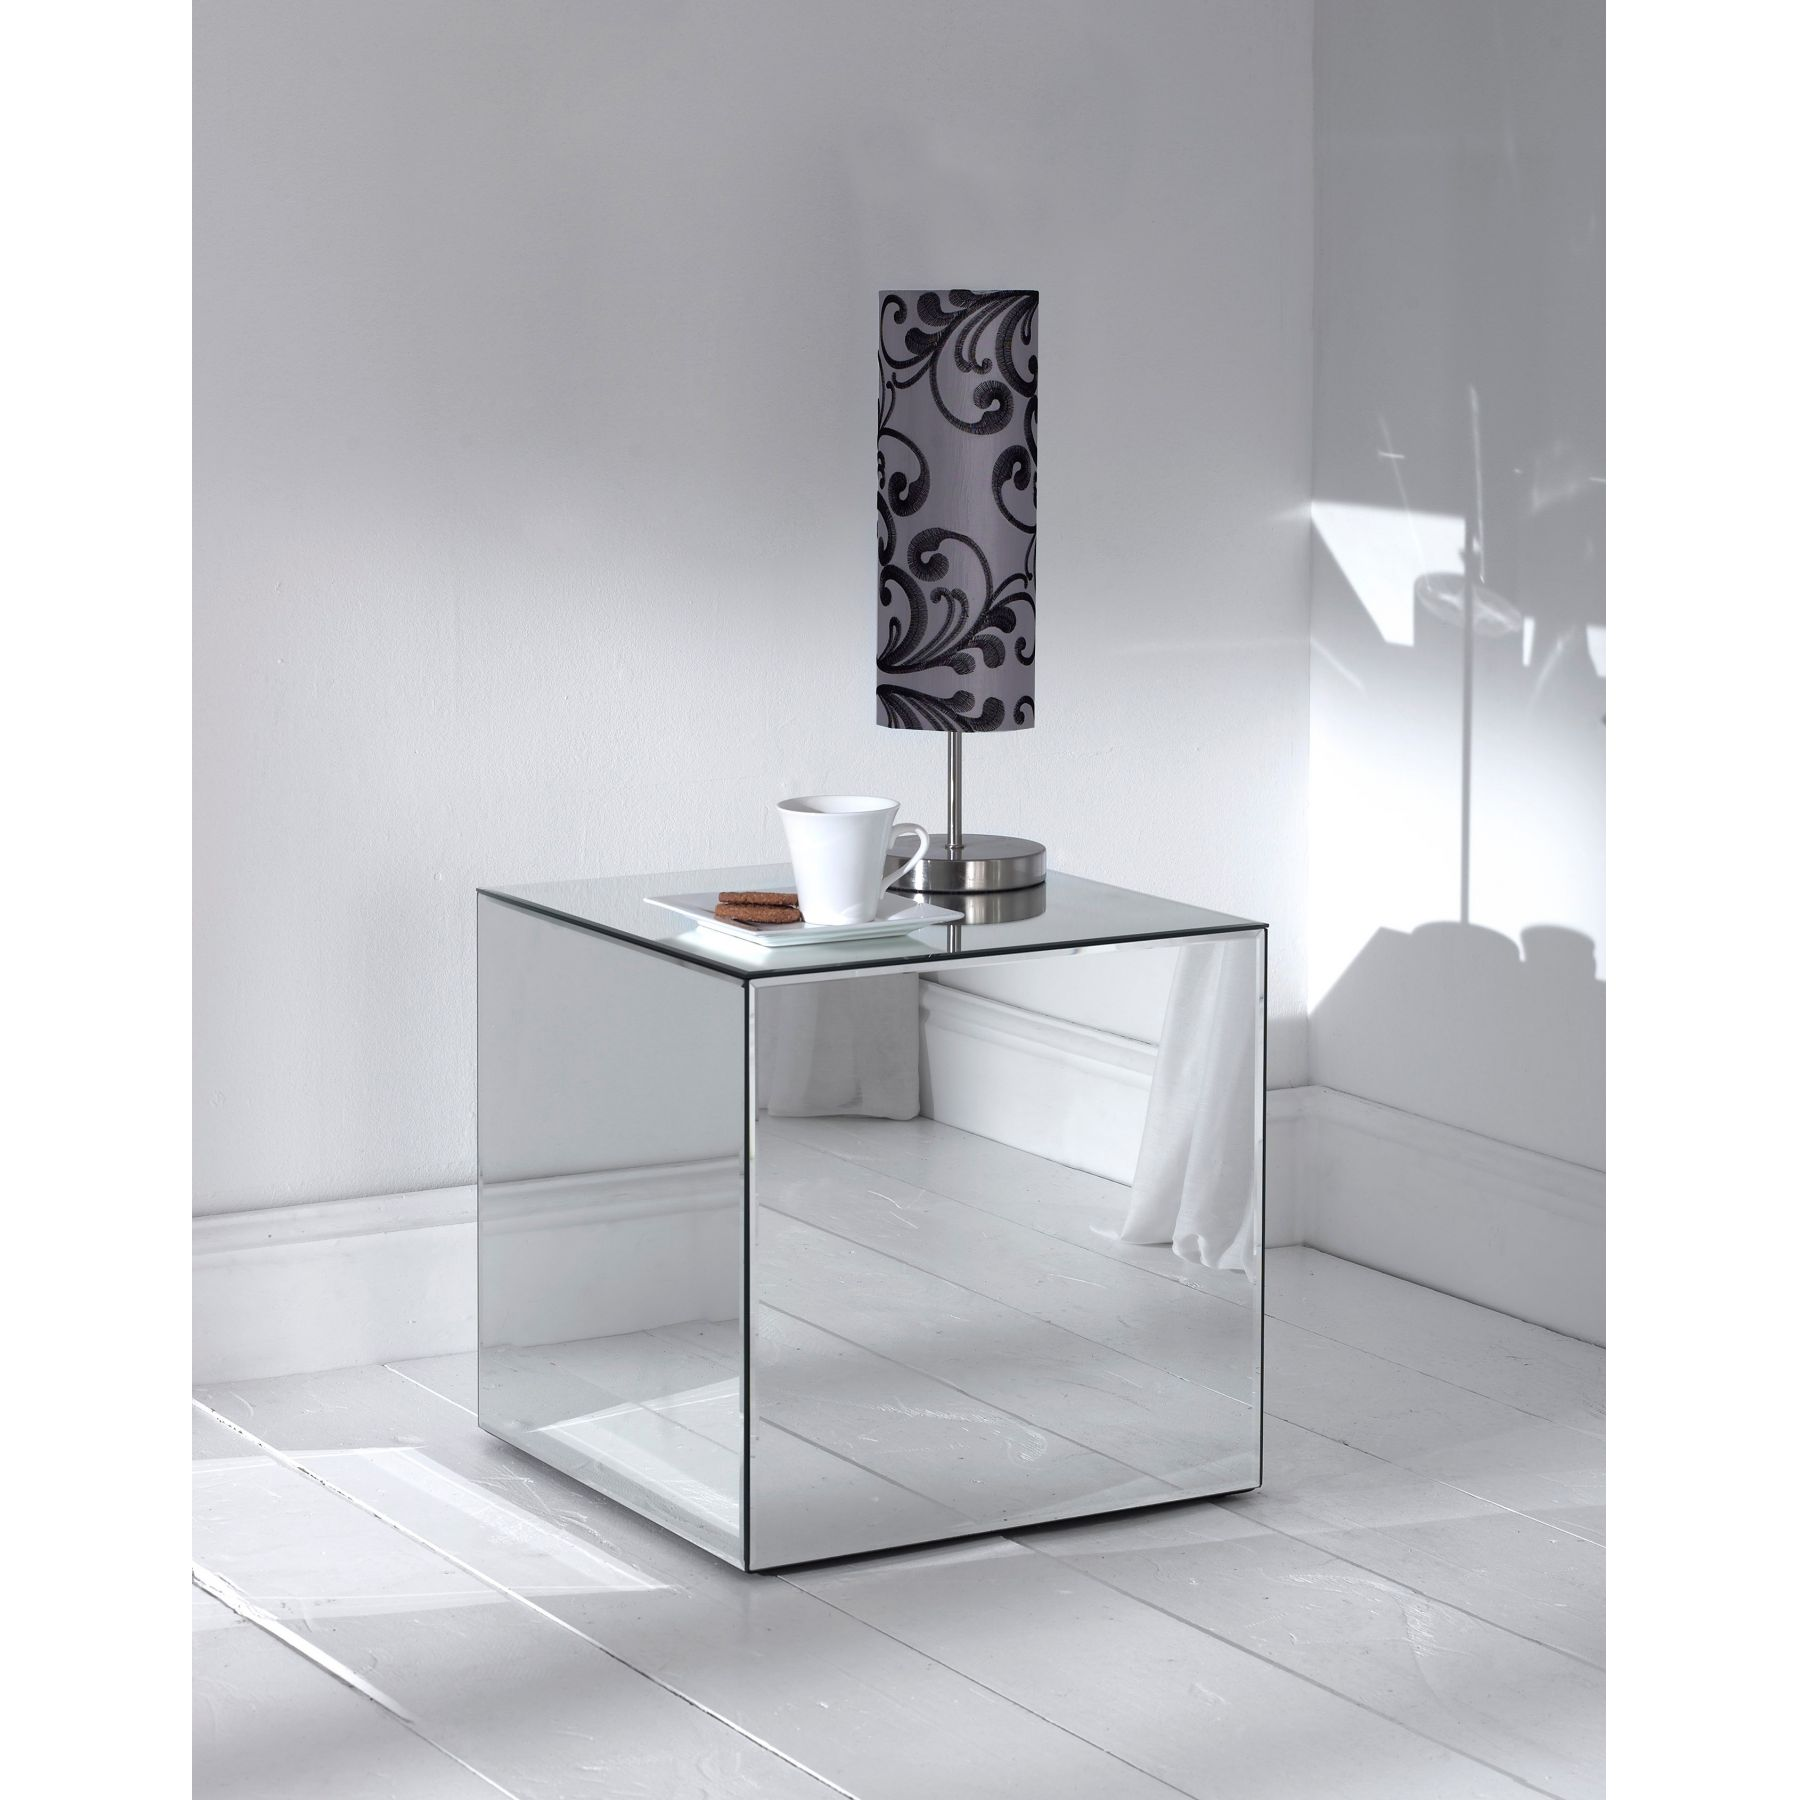 furniture accessories unique modern mirrored glass accent table cube shaped laminate mirror side with polished wood bedroom flooring and tube steel lamp base target unusual nest